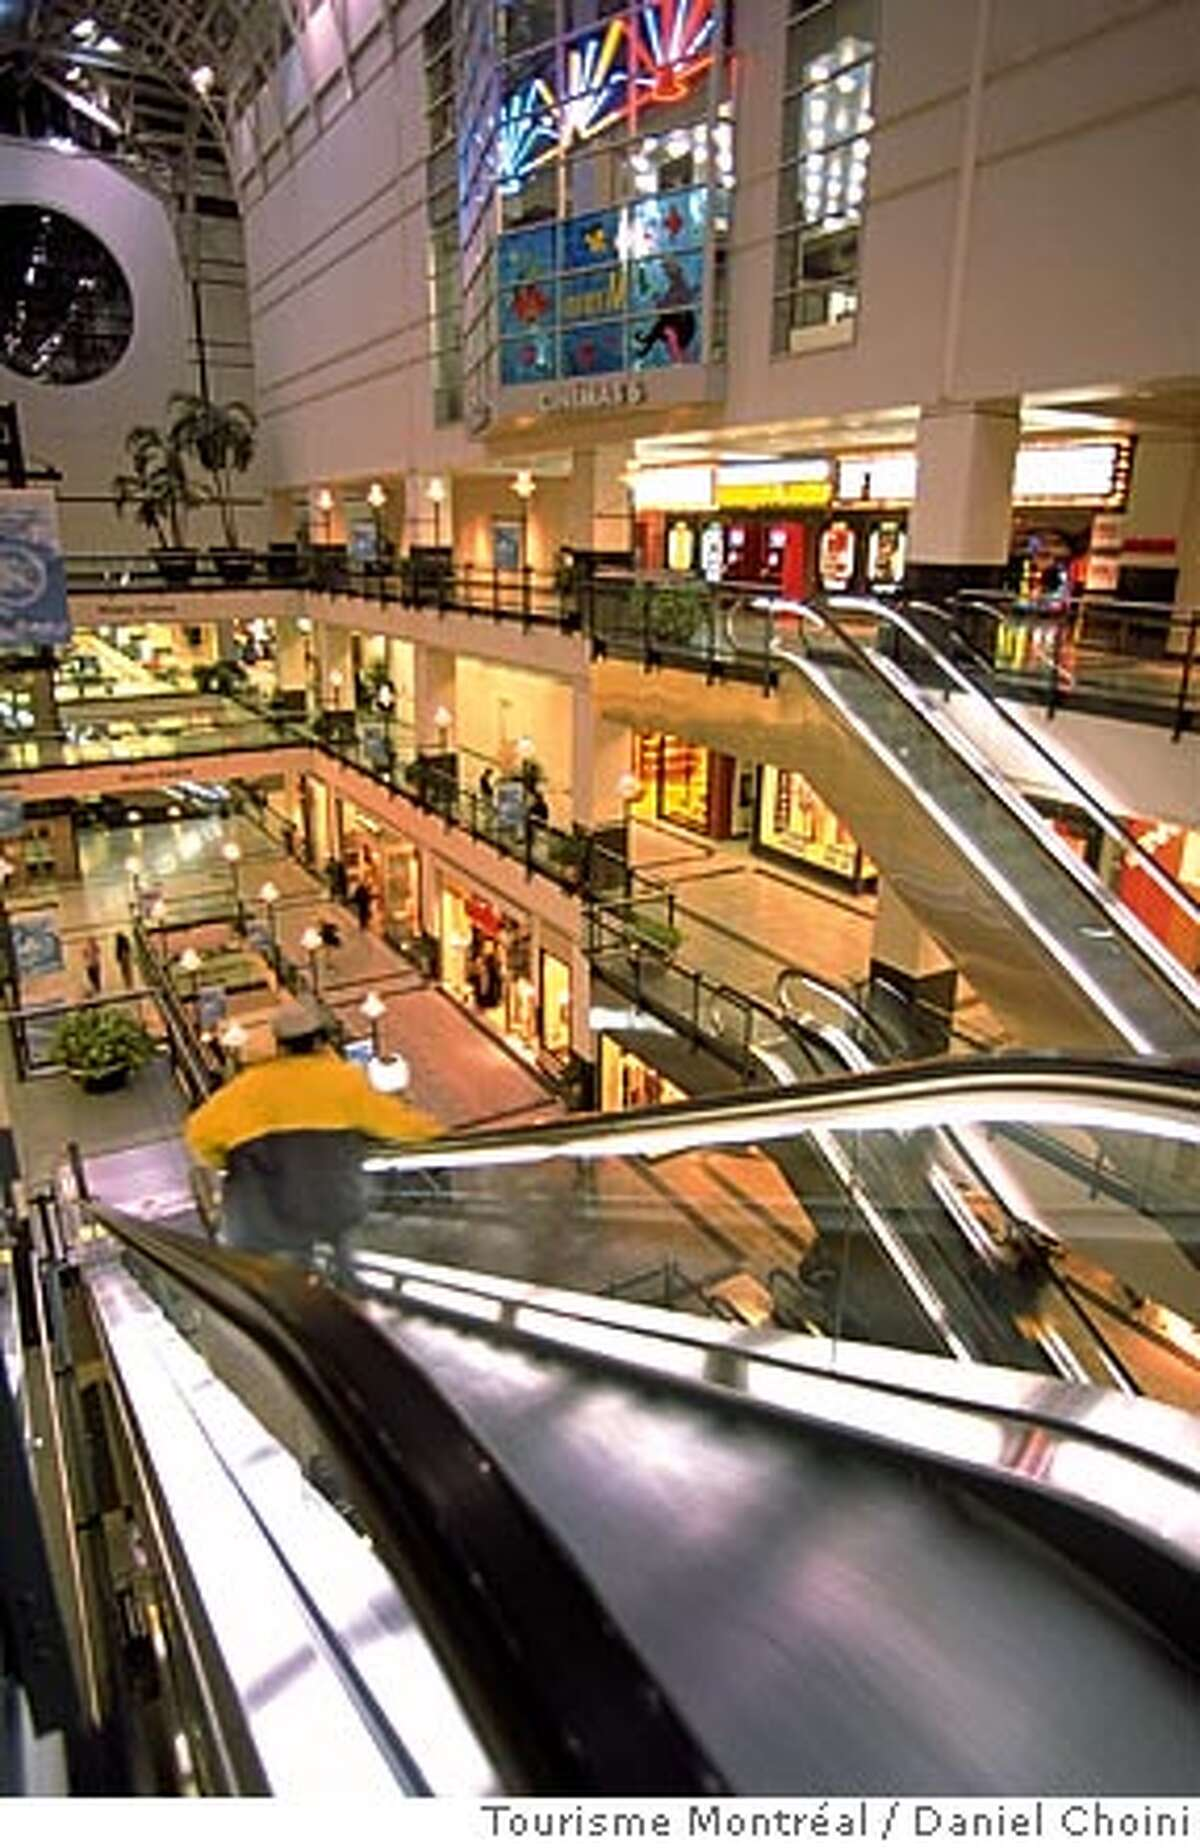 TRAVEL MONTREAL -- Shopping at Eaton Centre - Downtown, part of the vast underground city